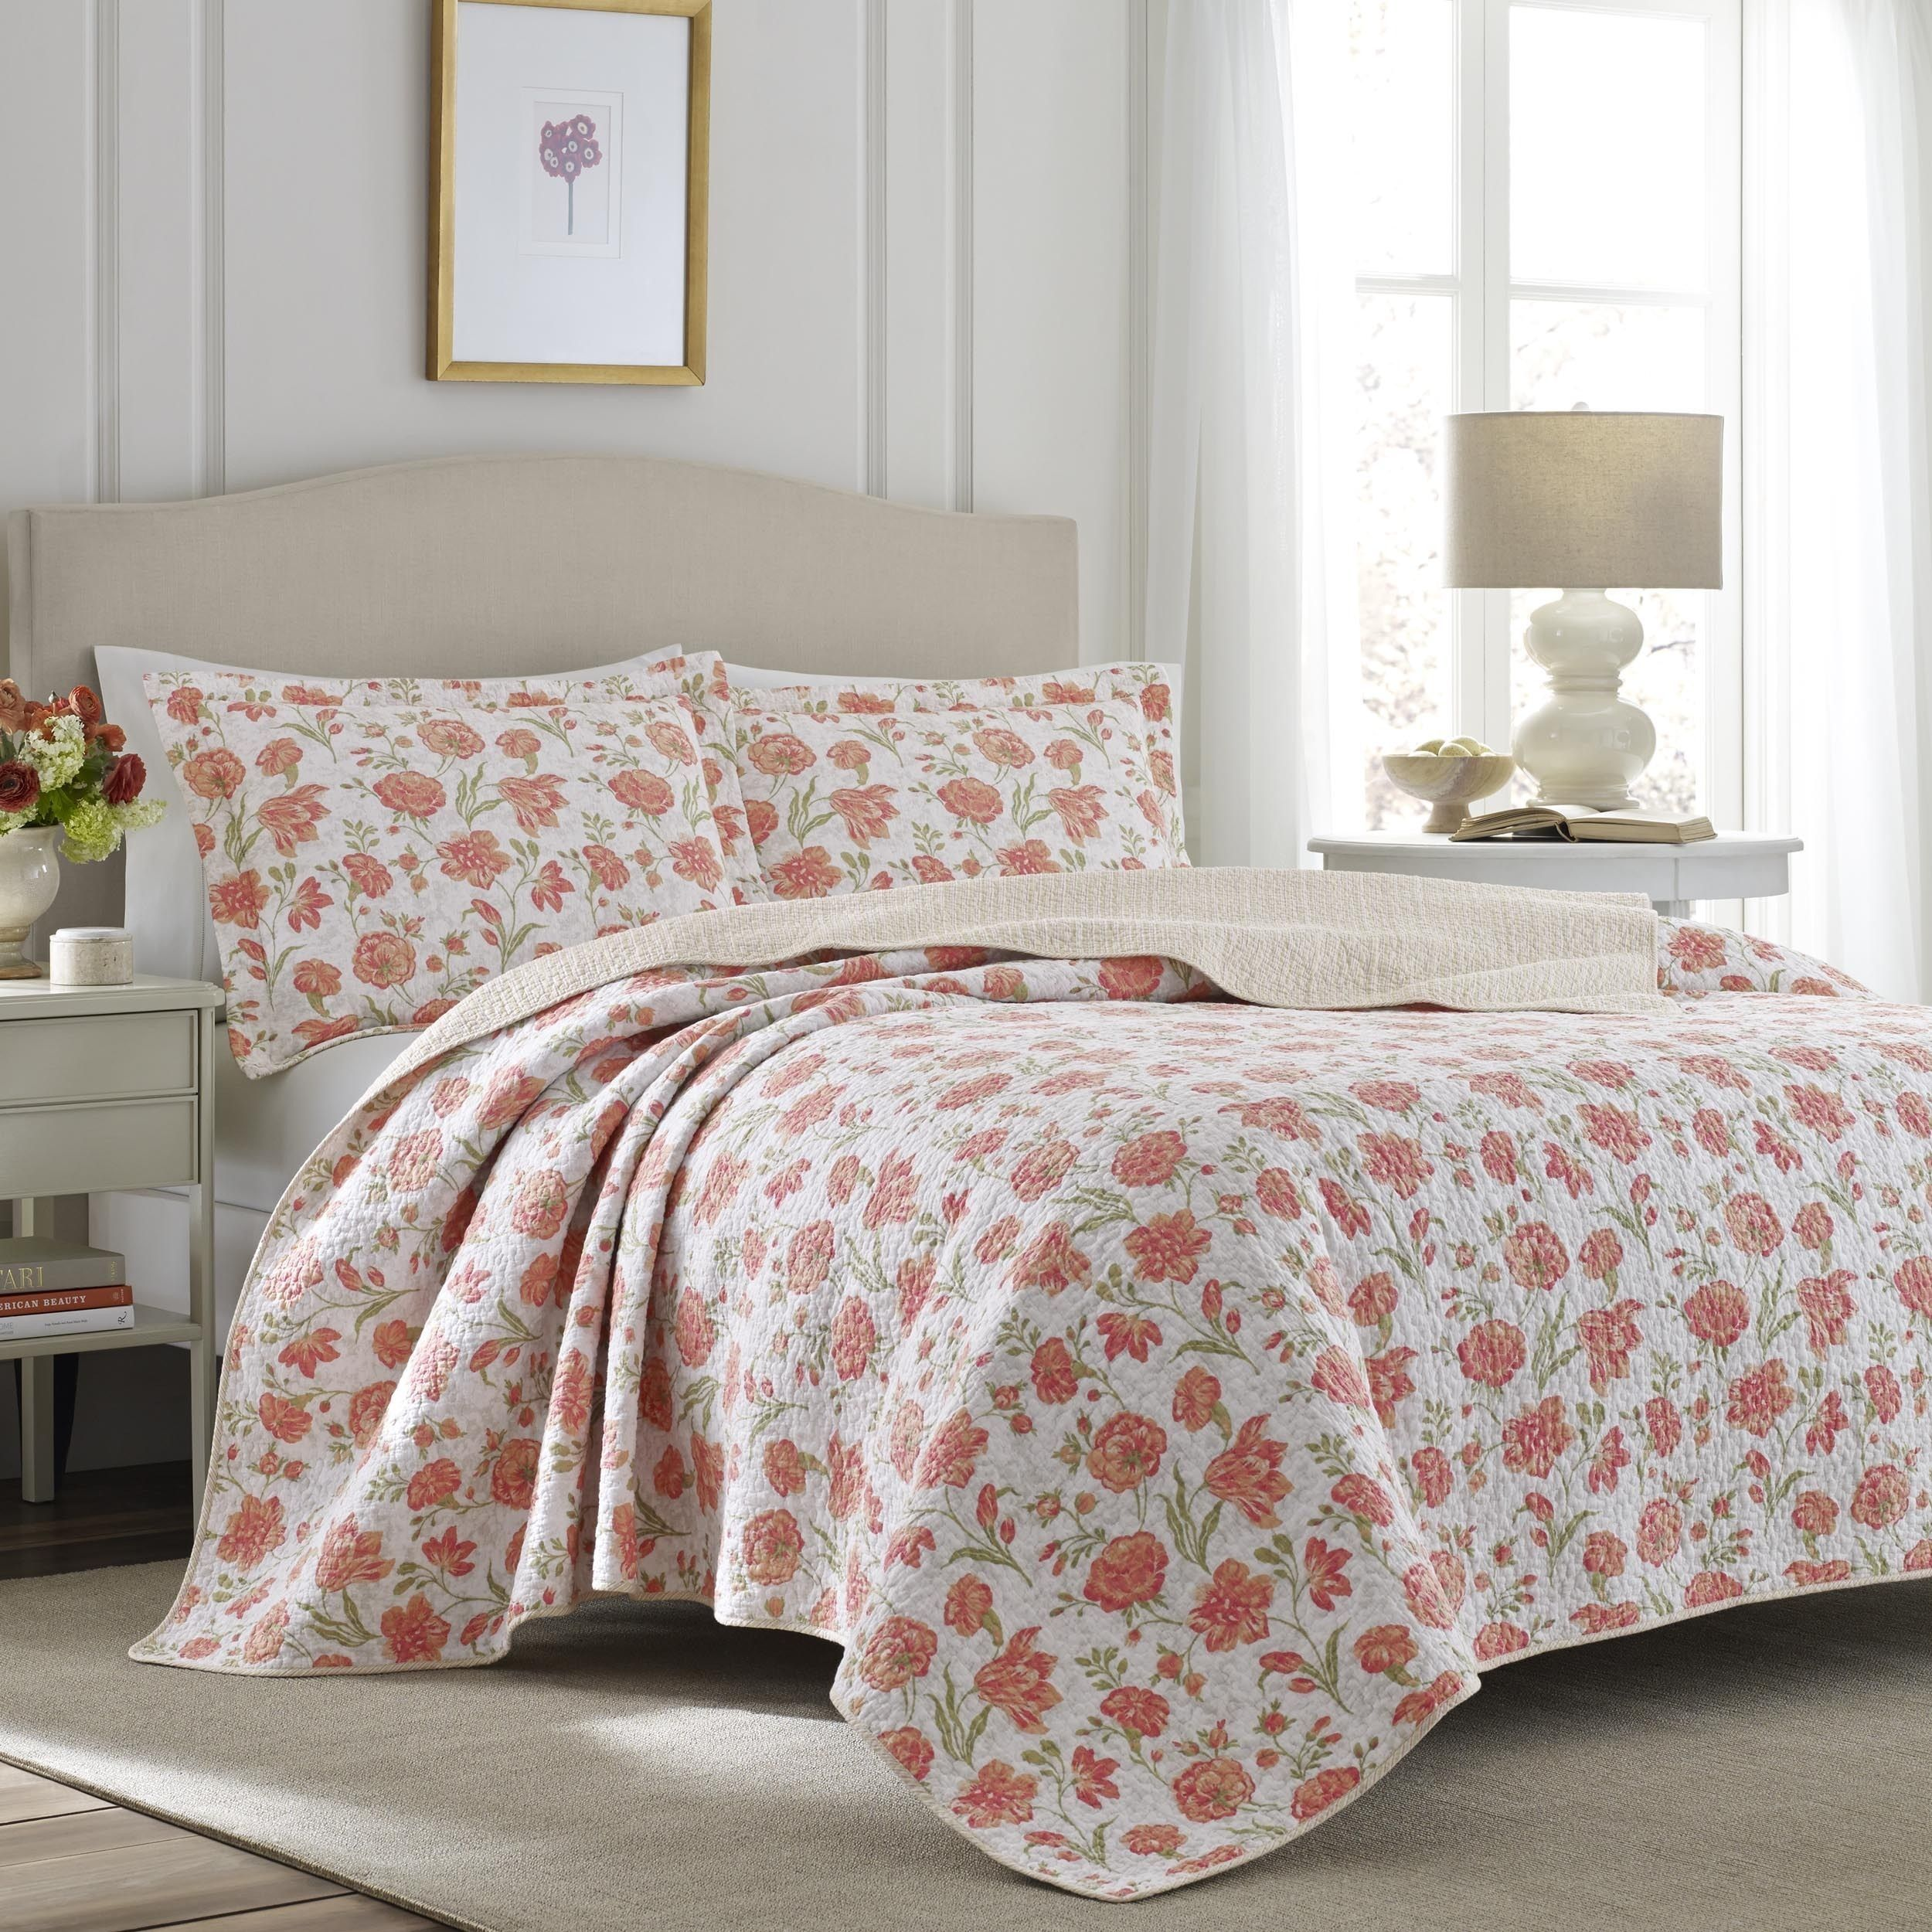 laura ashley cadence apricot quilt set products pinterest